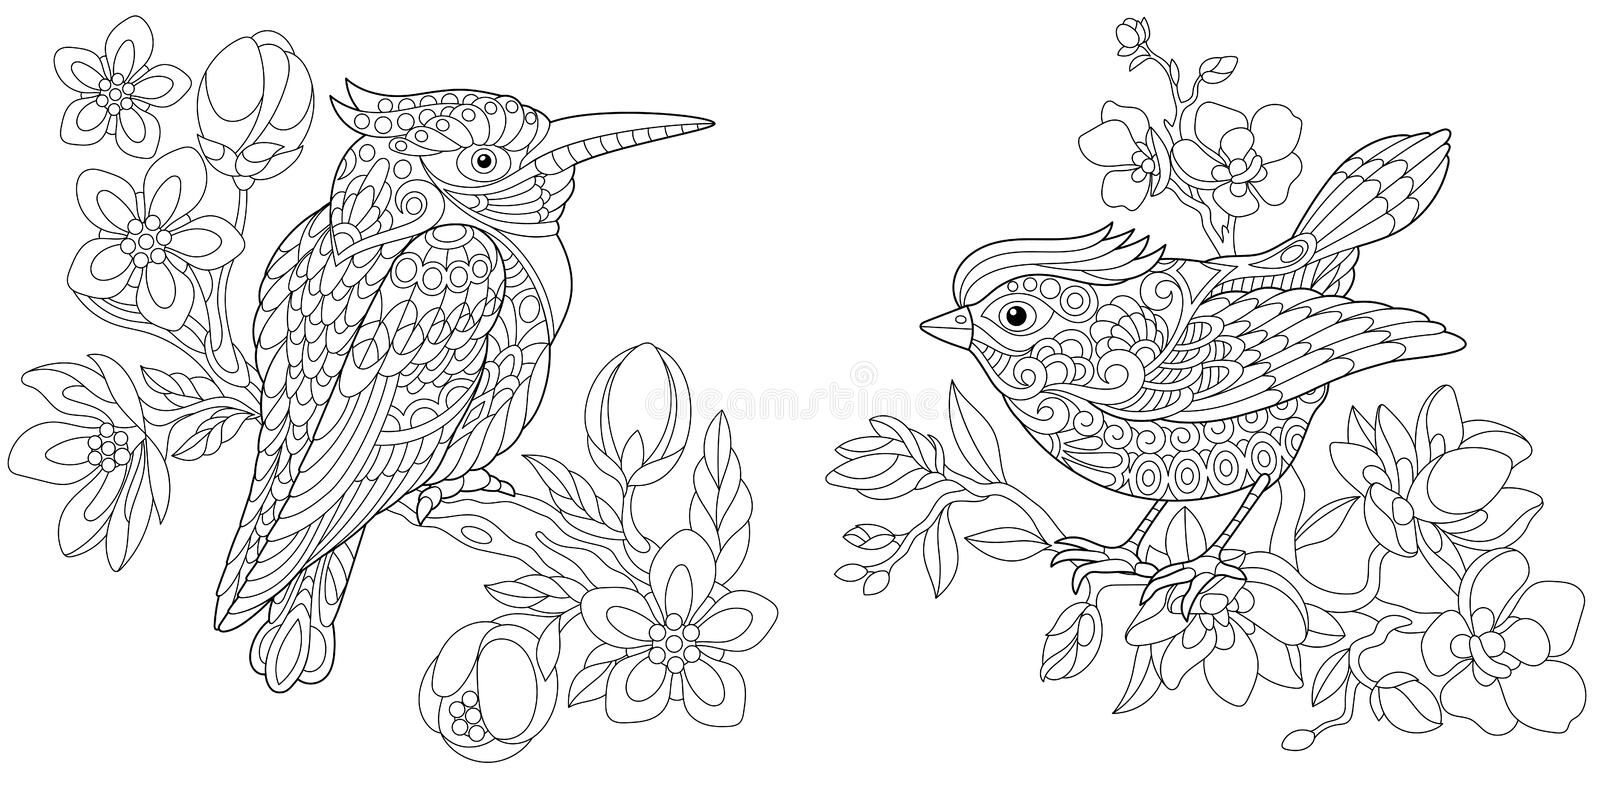 Coloring pages with kingfisher and canary bird vector illustration